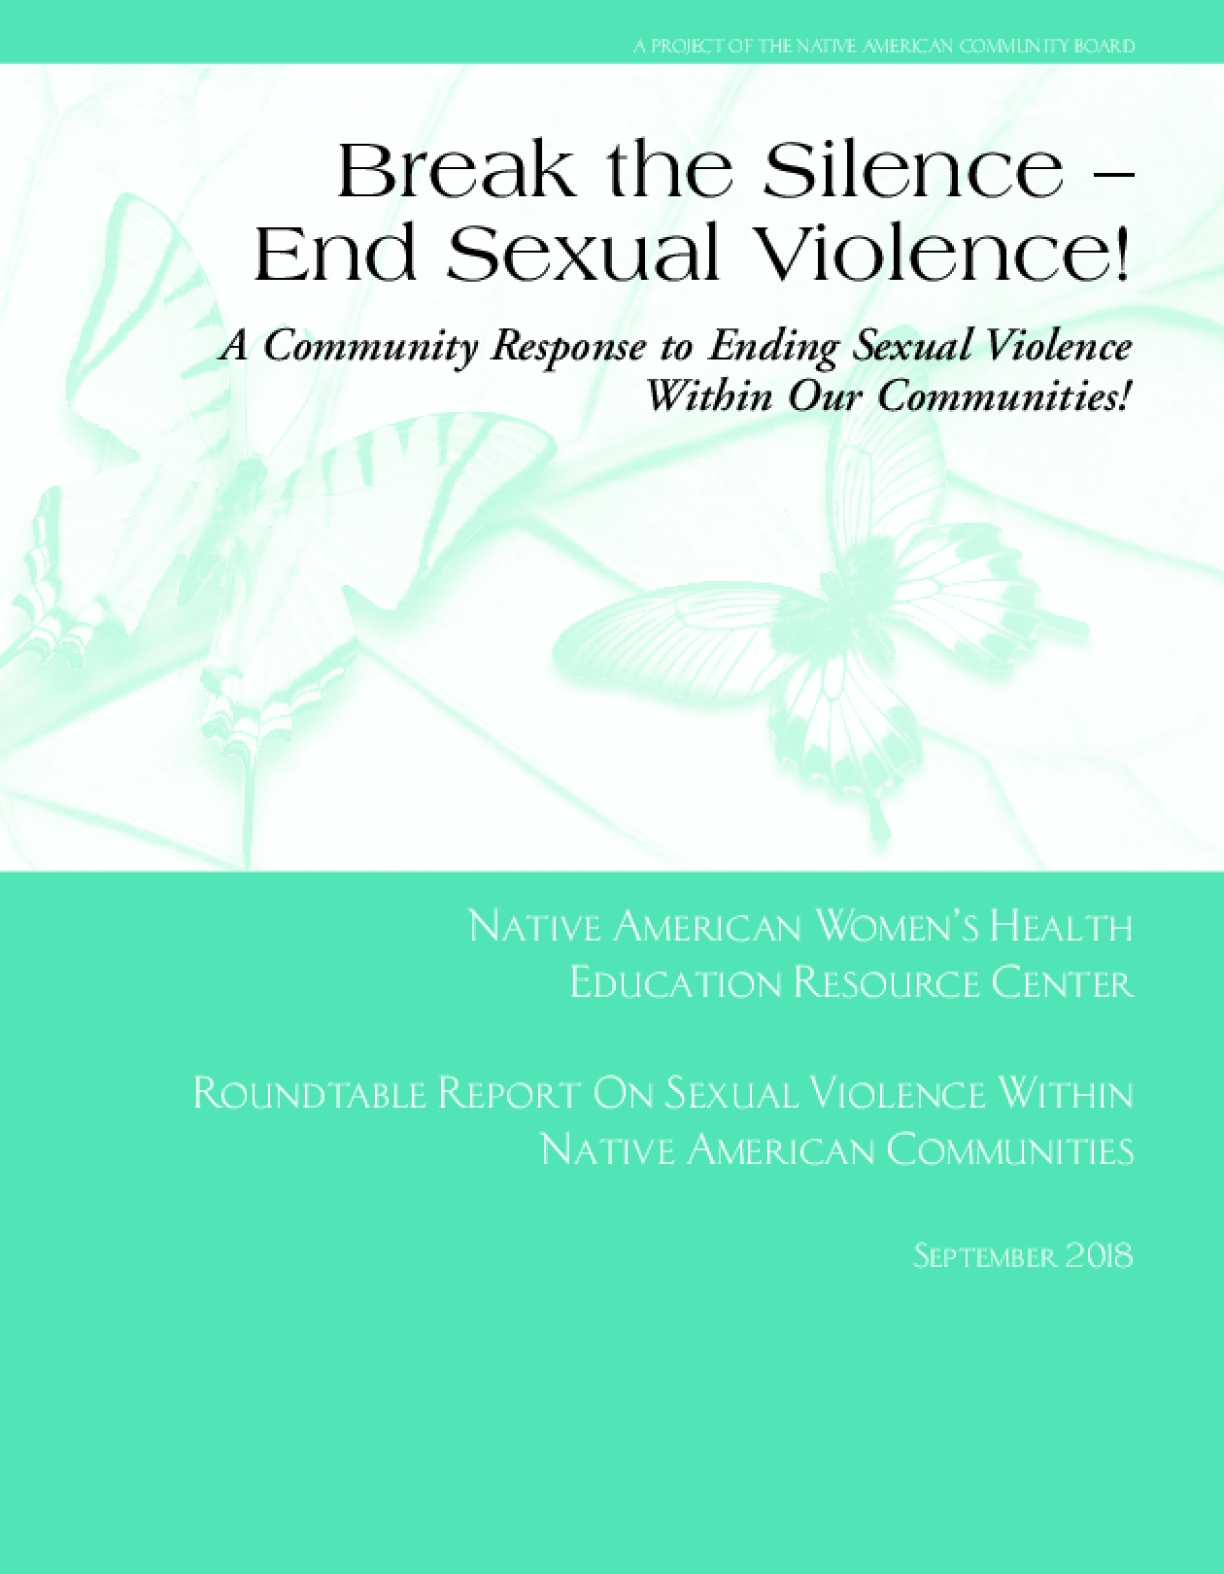 Break the Silence - End Sexual Violence: A Community Response to Ending Sexual Violence Within our Communities!